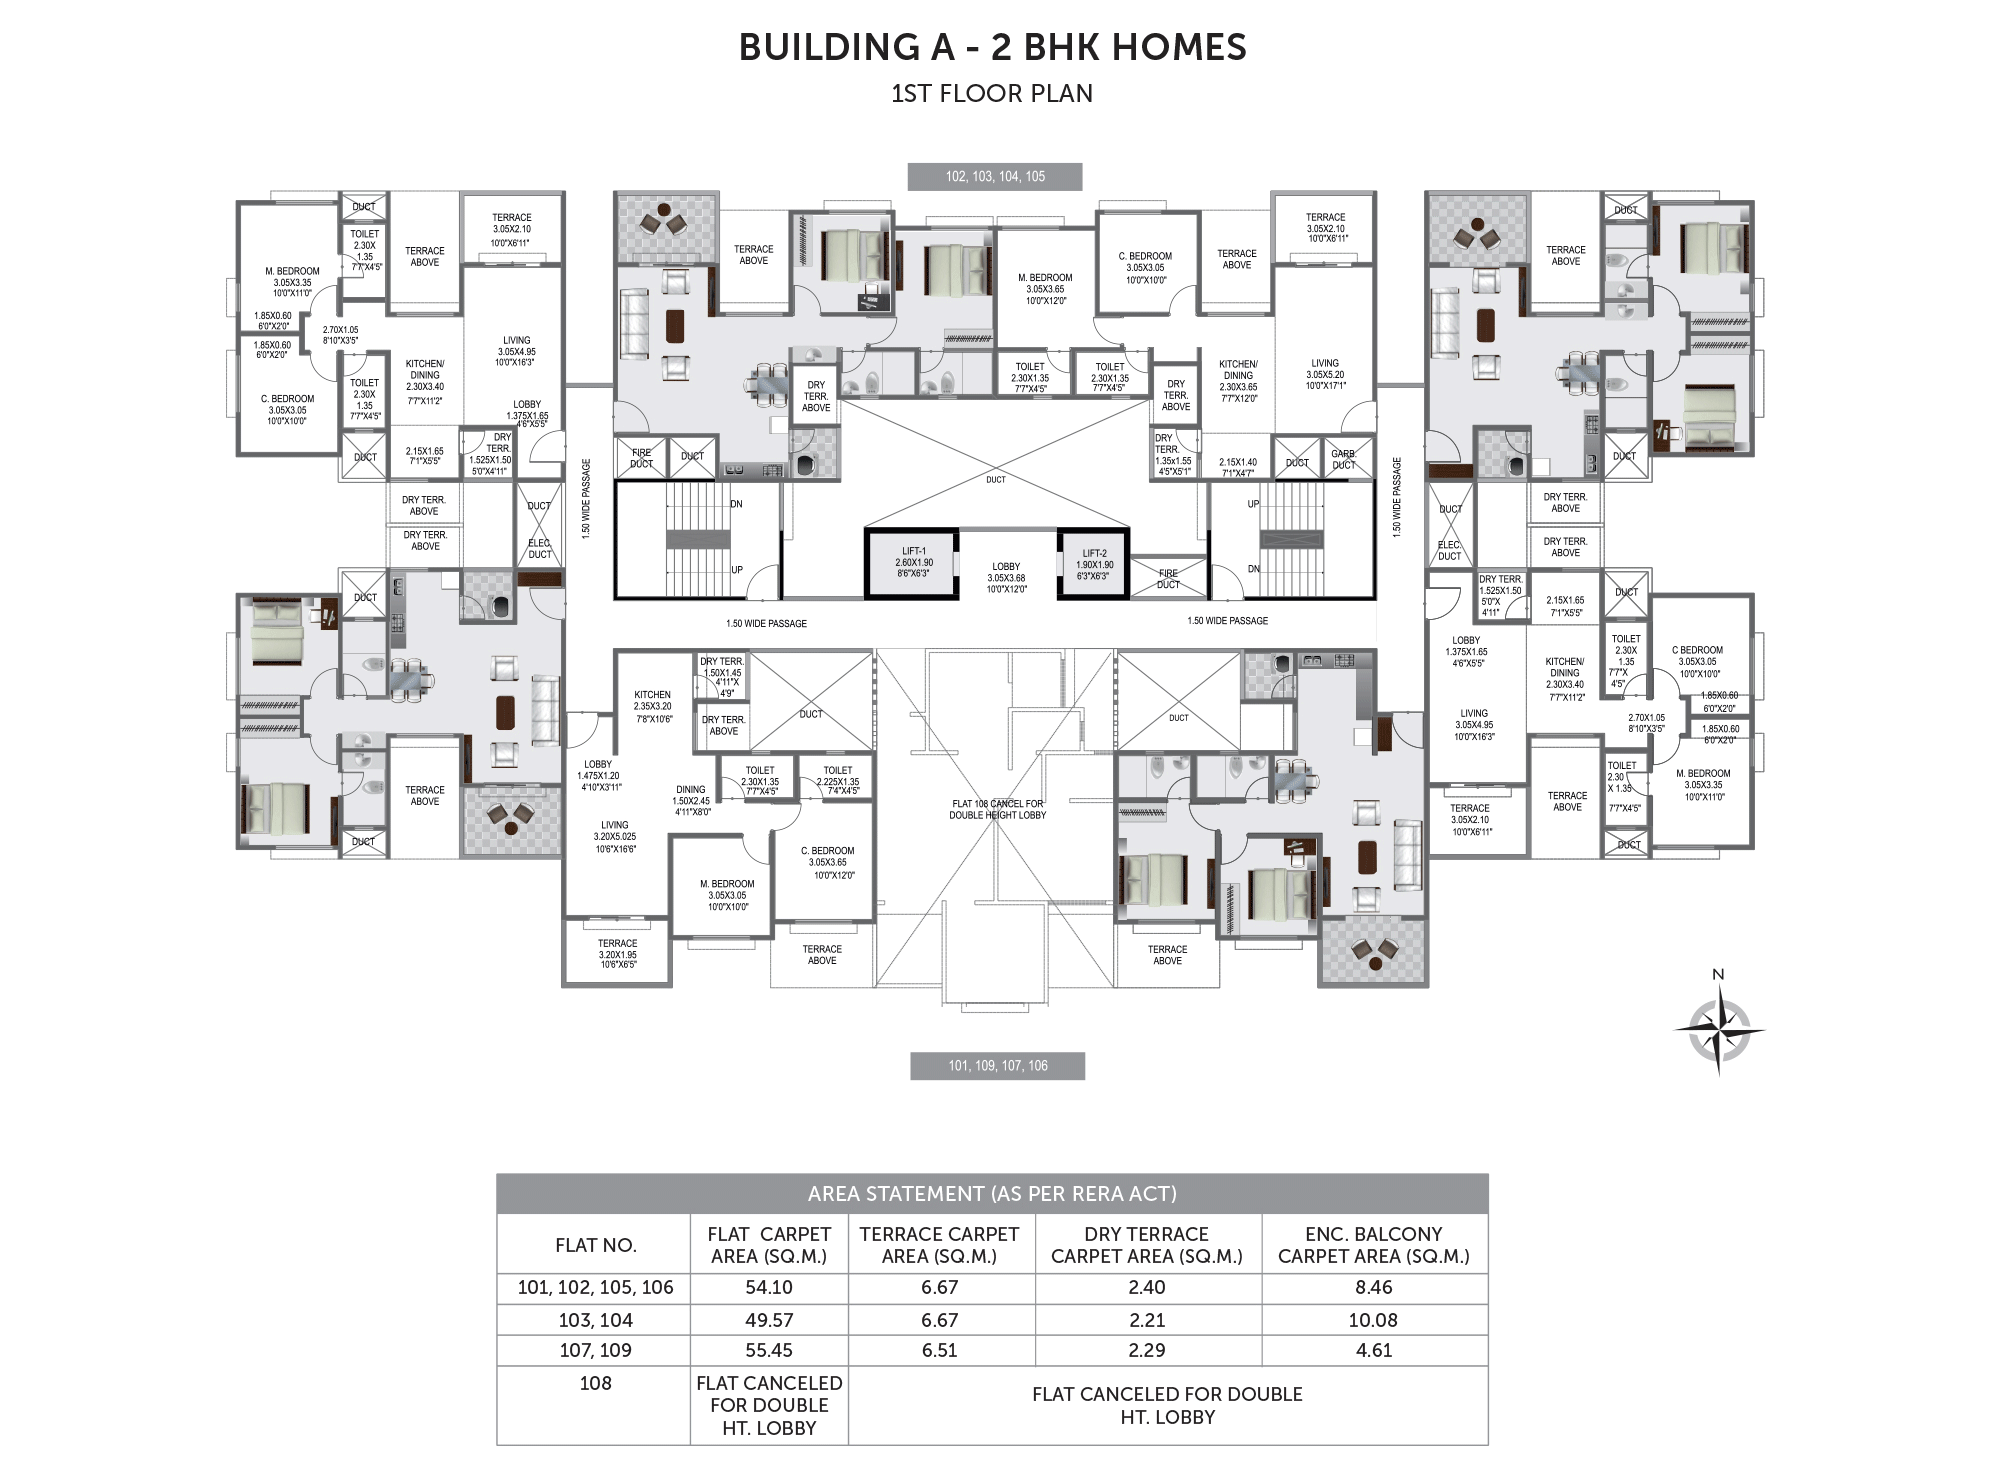 Pristine Prolife 3_Building B & C- 1ST FLOOR PLAN